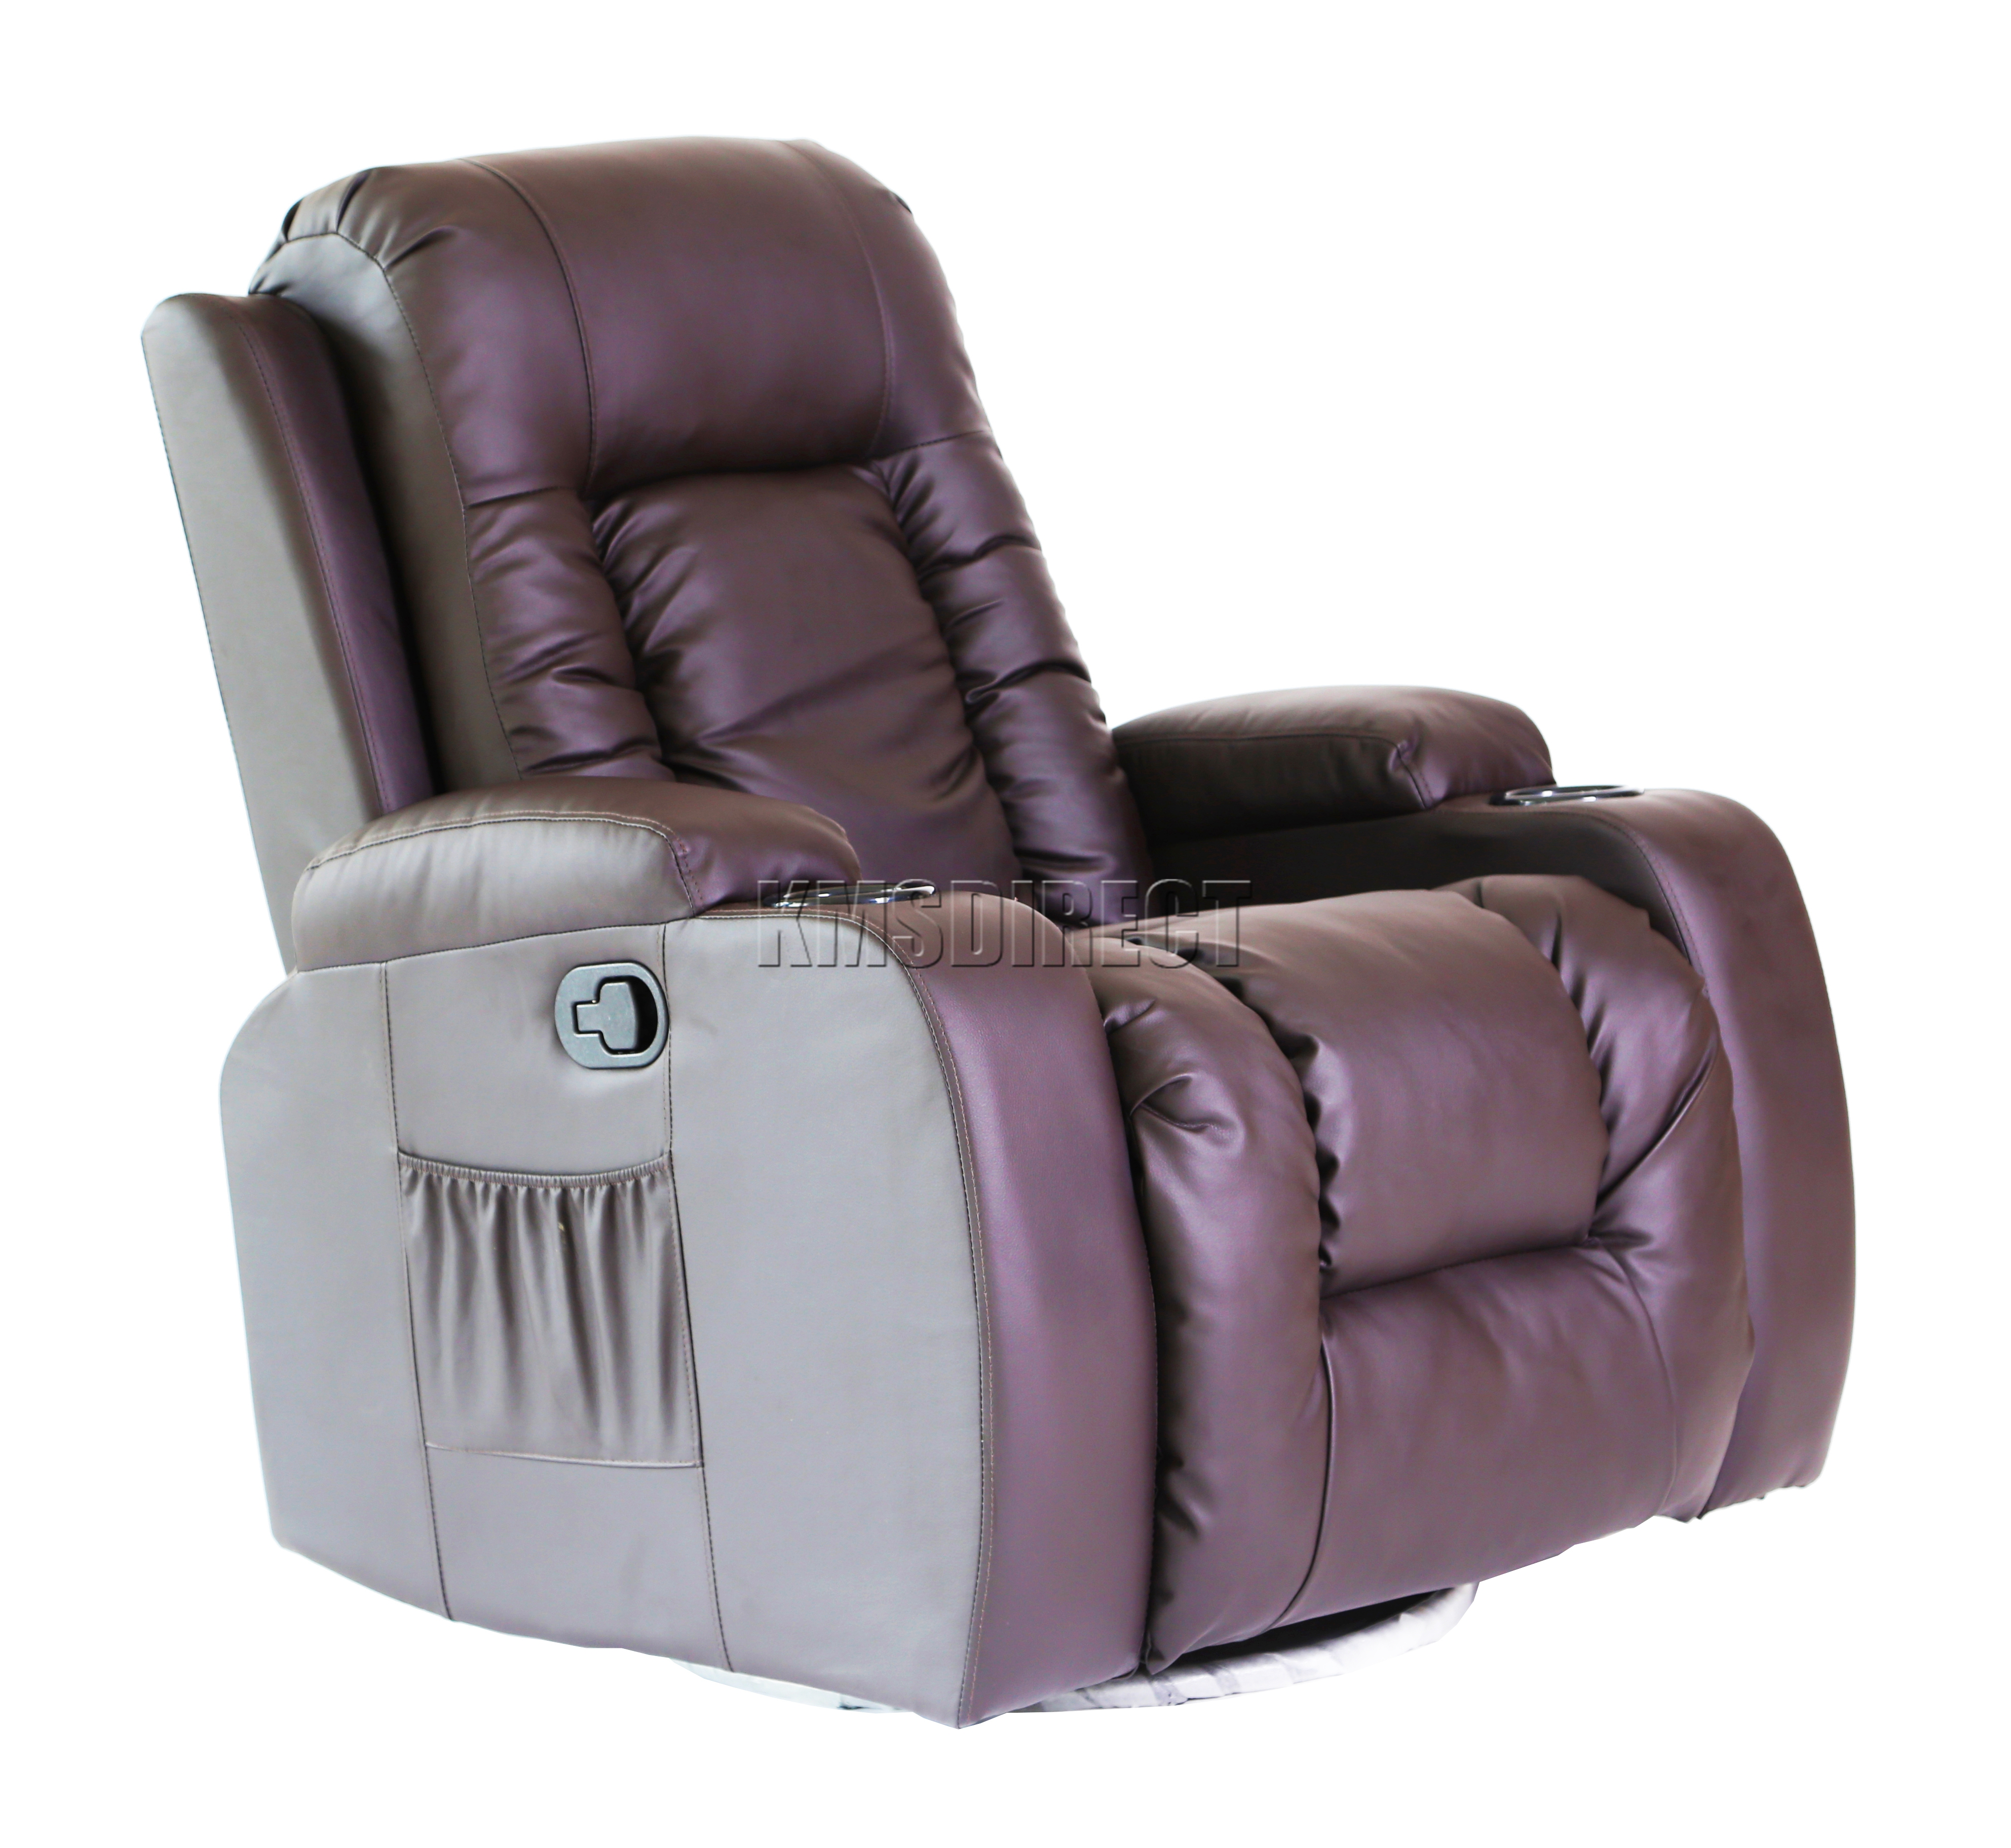 Foxhunter Leather Massage Cinema Recliner Sofa Chair Swivel Rocking Mls 02 Brown Ebay